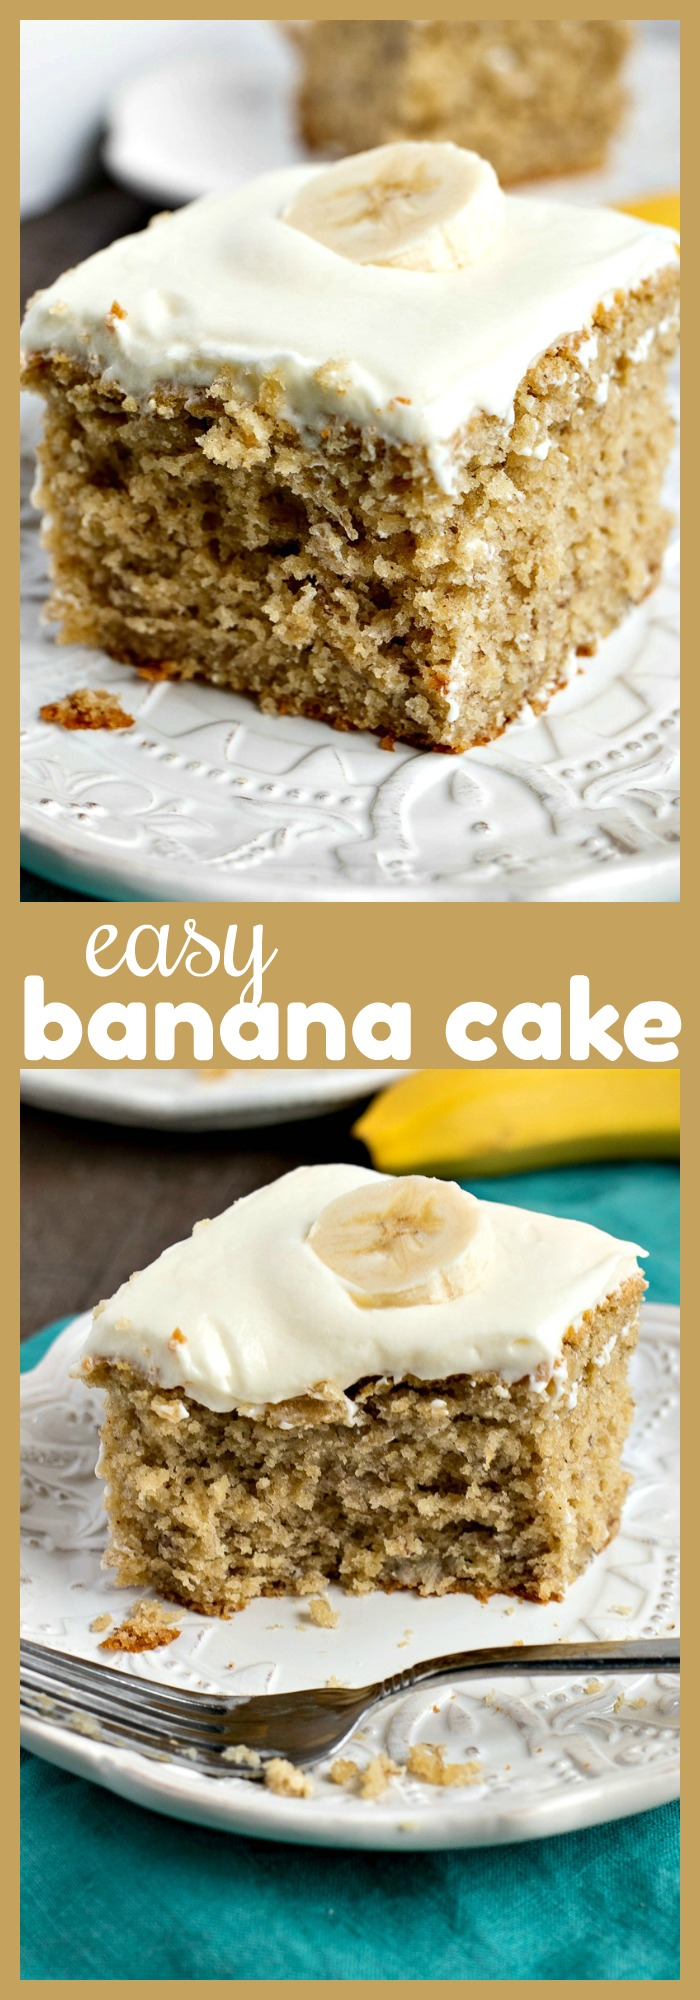 Easy Banana Cake photo collage